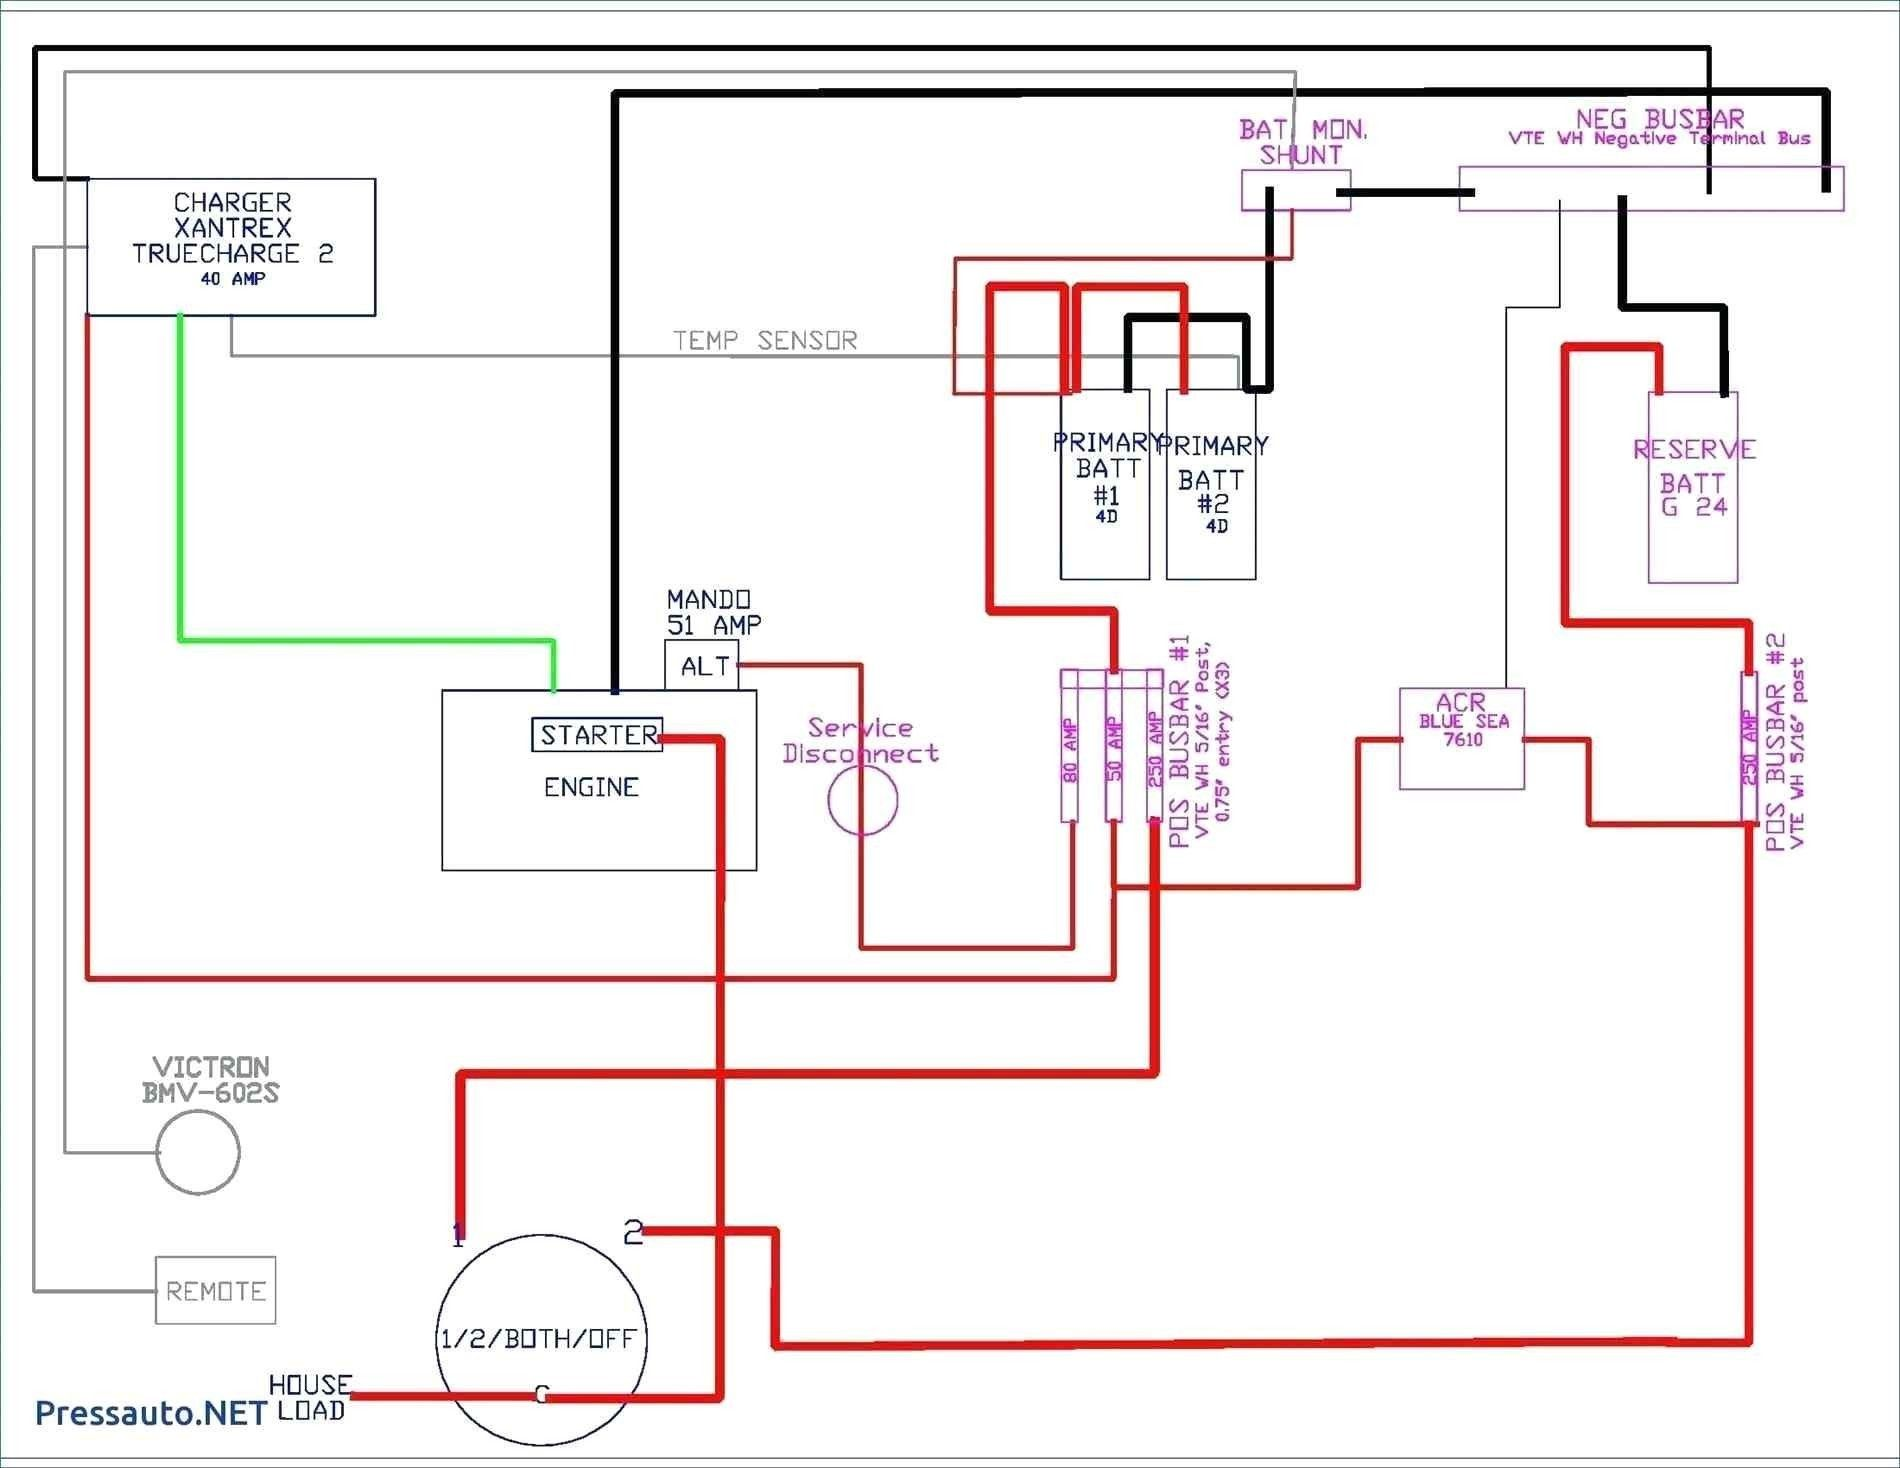 Diagram Wiringdiagram Diagramming Diagramm Visuals Visualisation Graphical Electrical Circuit Diagram Electrical Diagram Electrical Wiring Diagram